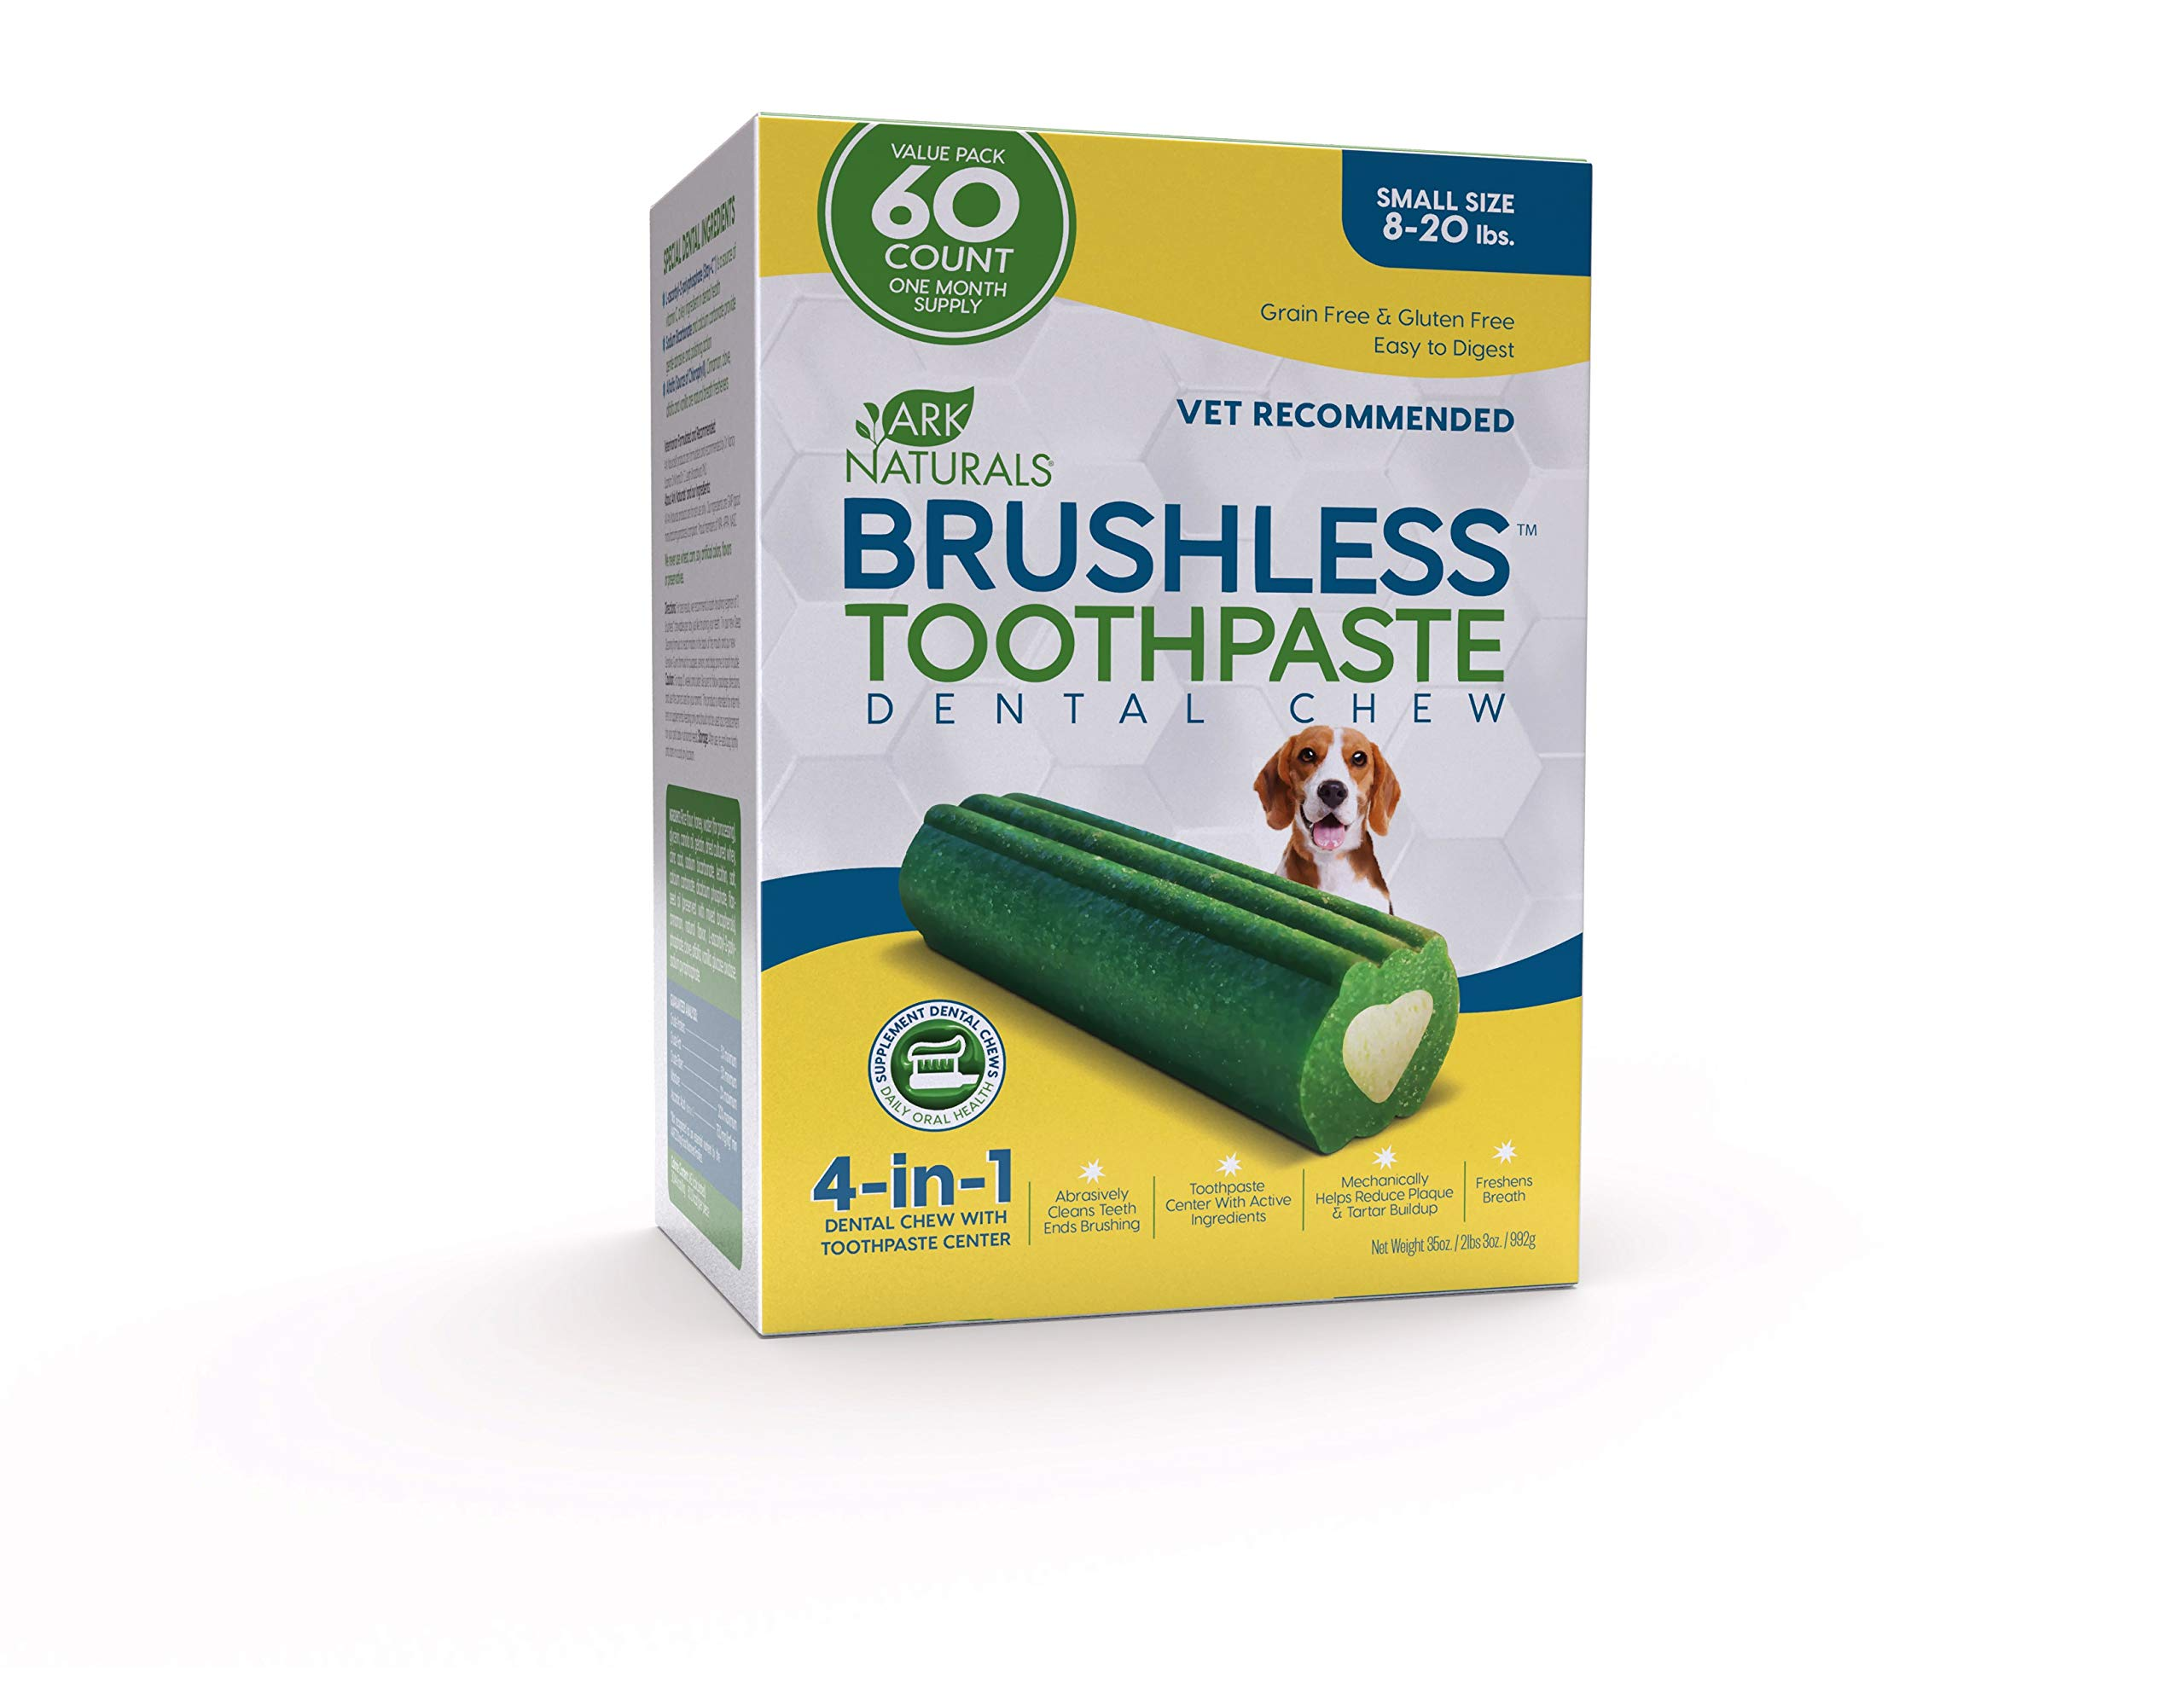 ARK NATURALS Brushless Toothpaste Value Pack, Vet Recommended Dental Chew for Small Breeds, Plaque, Tartar & Bacteria Control, Freshens Breath, One Month Supply (60Count)